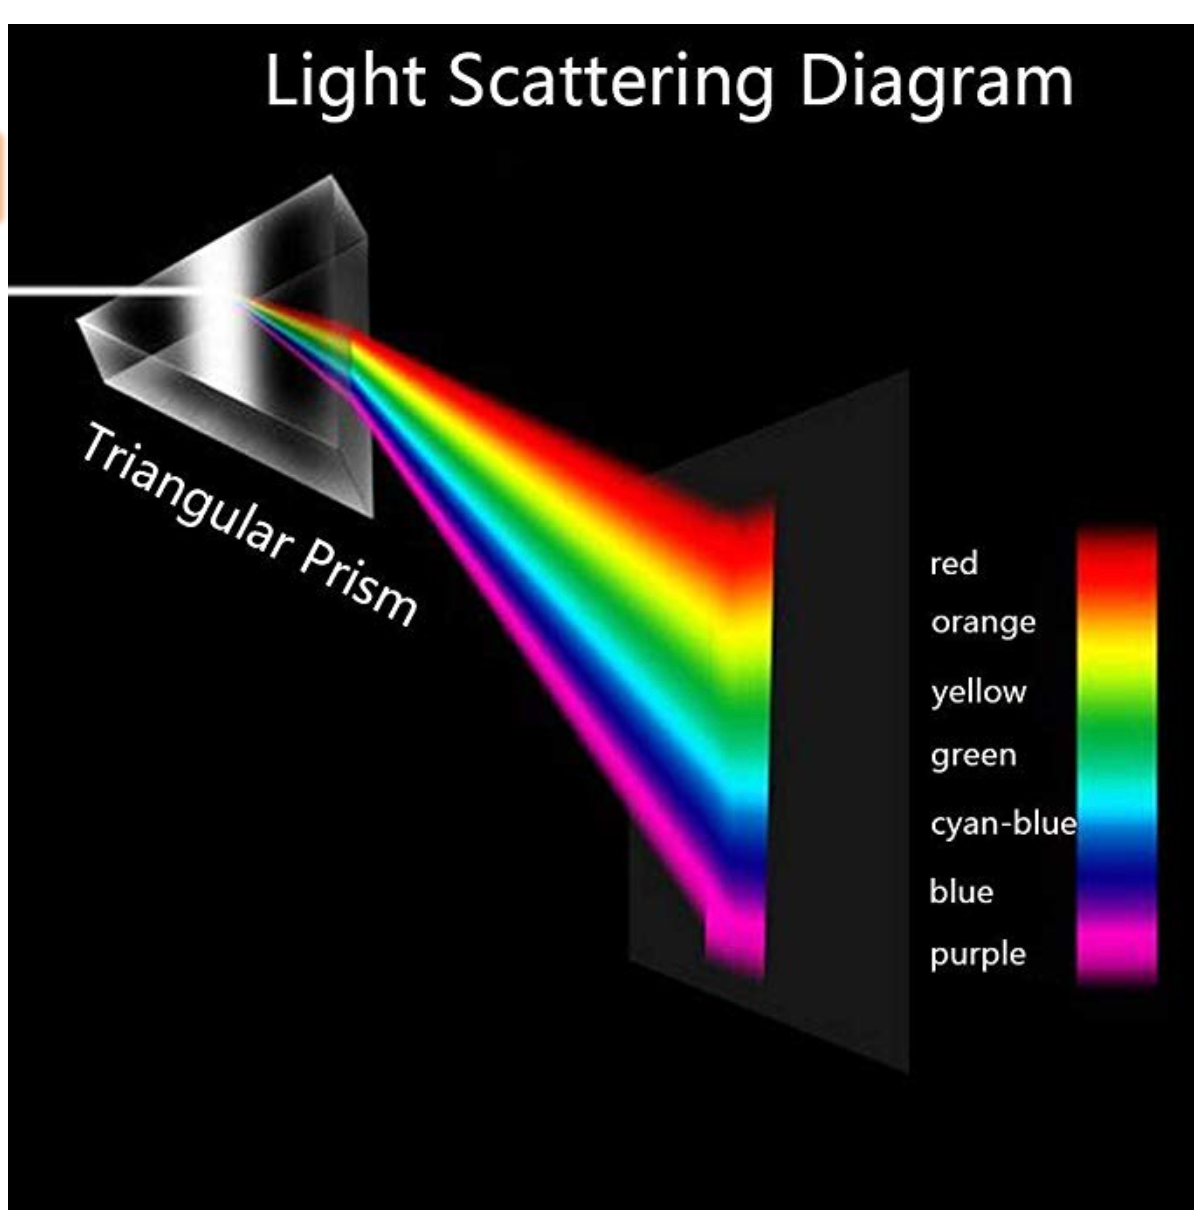 Triangular Photography Prism